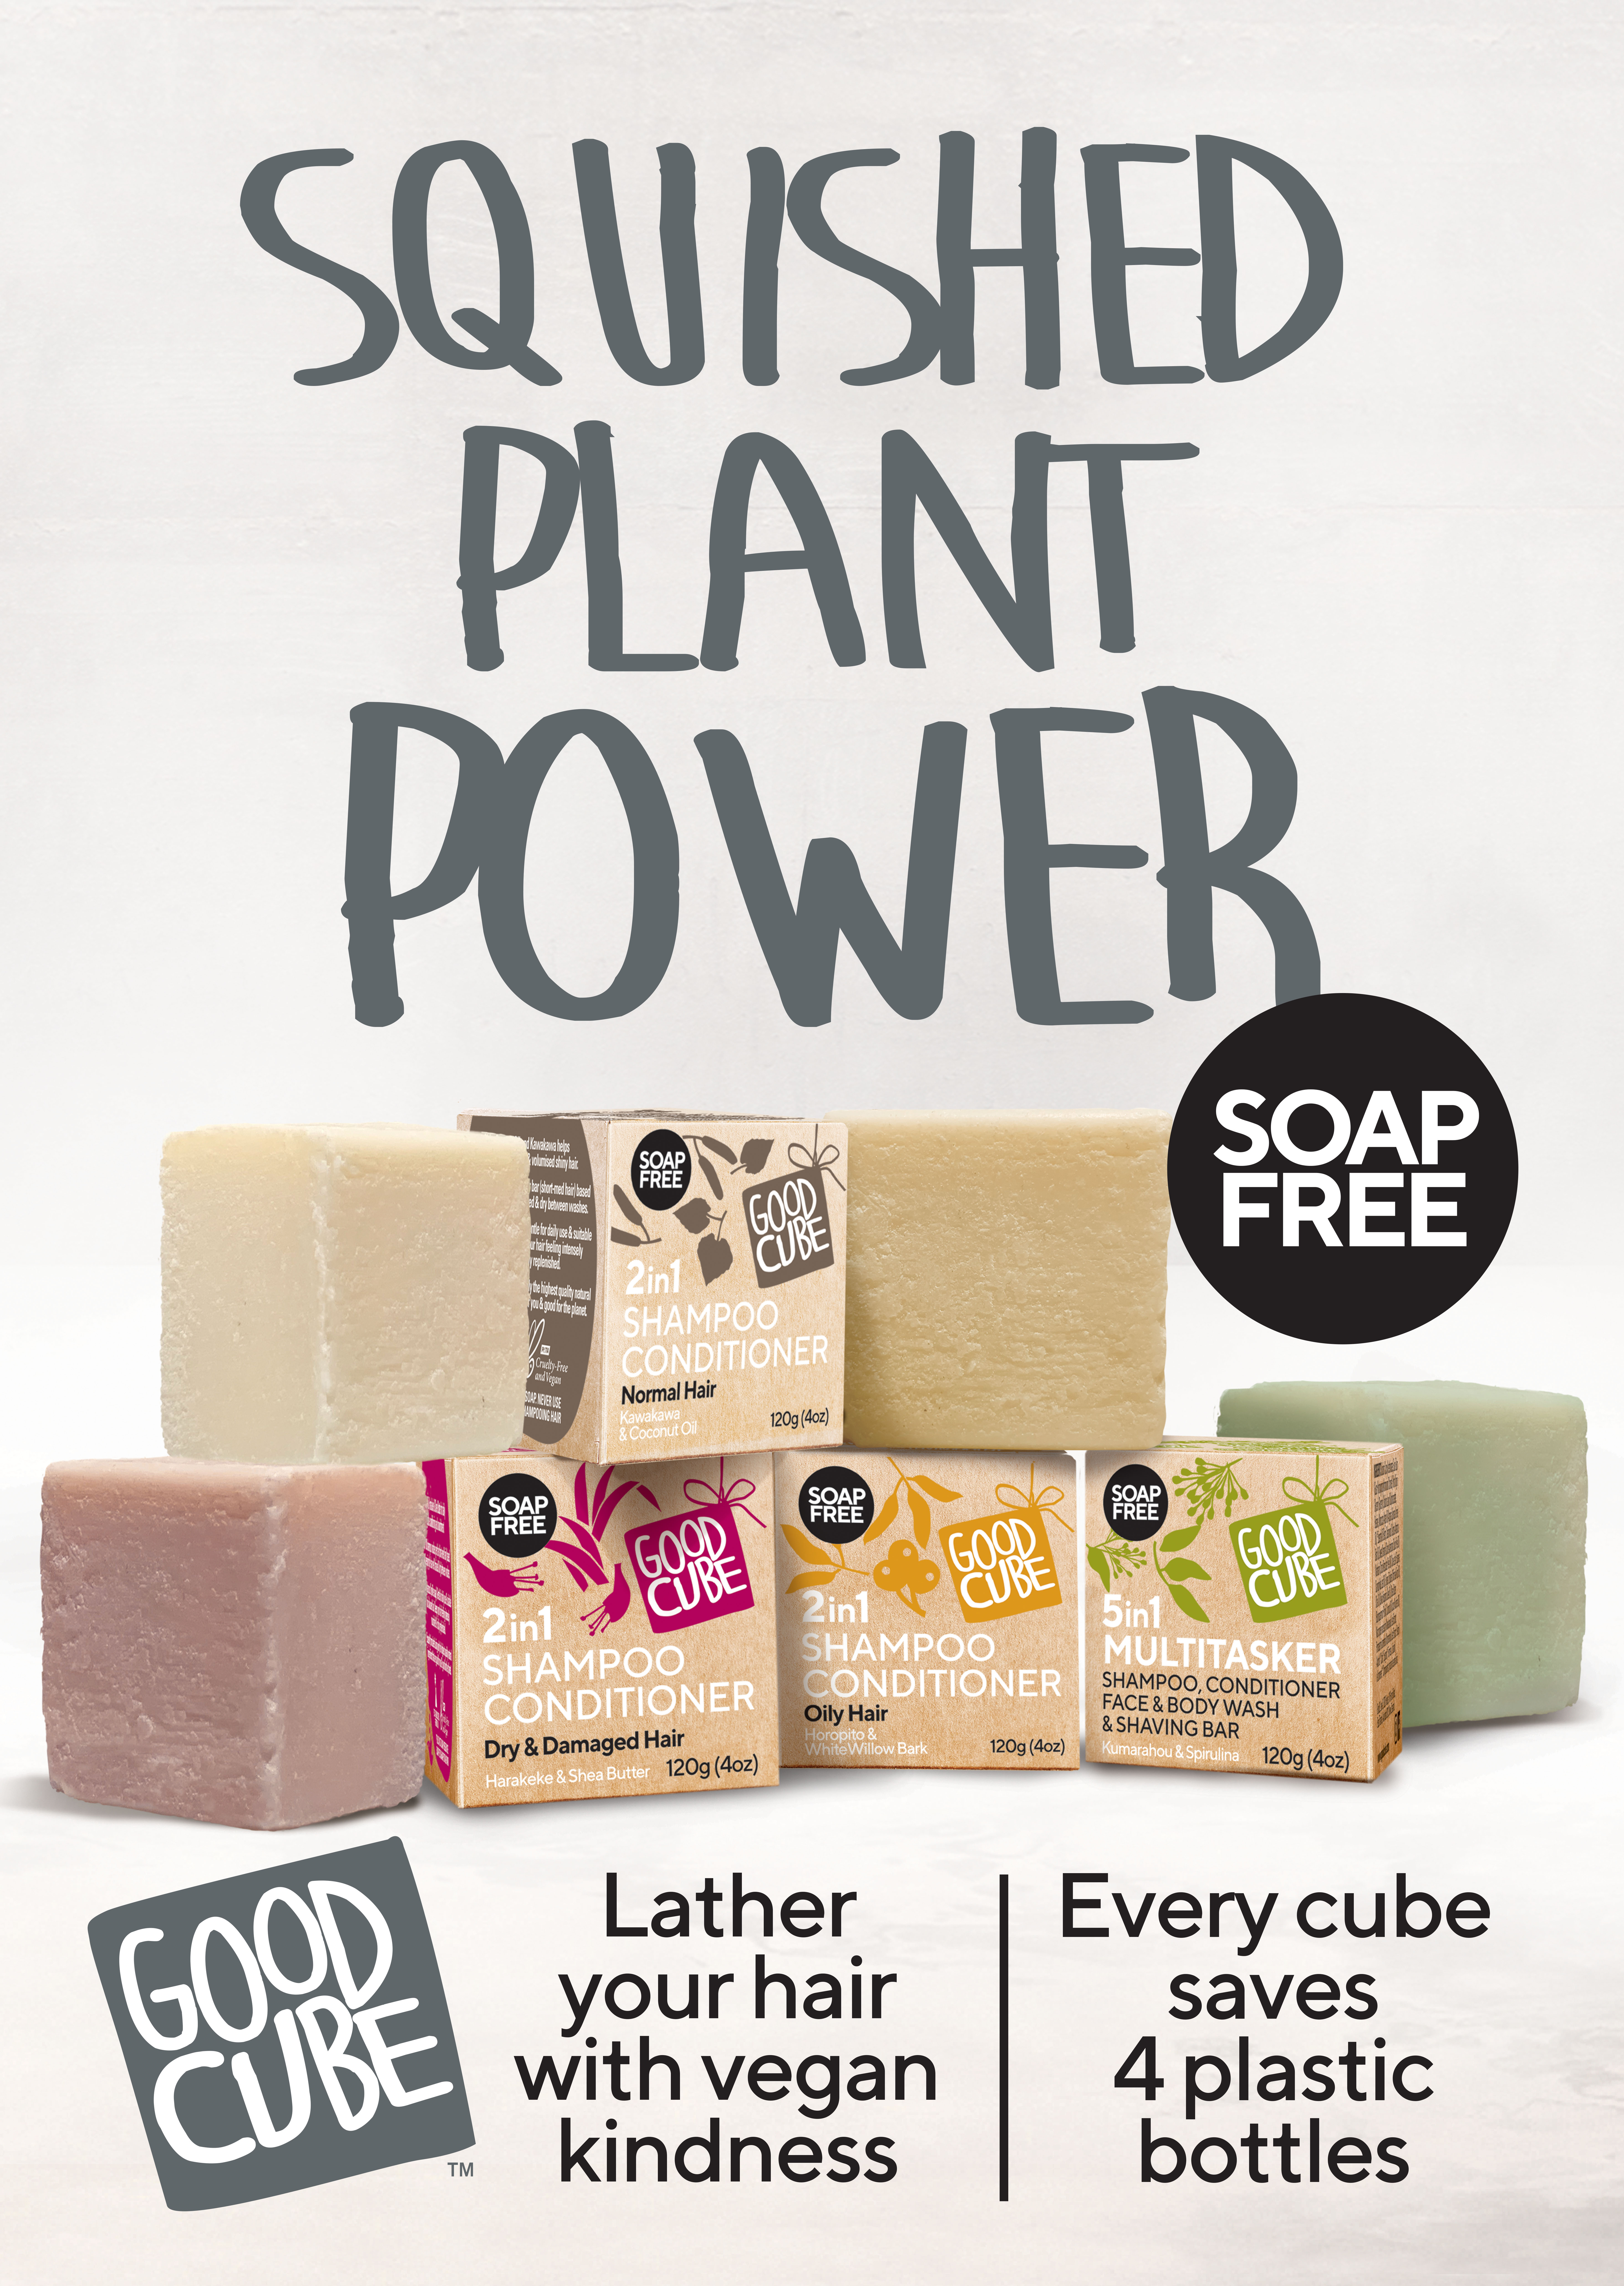 Good Cube squished plant power poster - shows use of tagline in retail poster and plastic free bar packaging